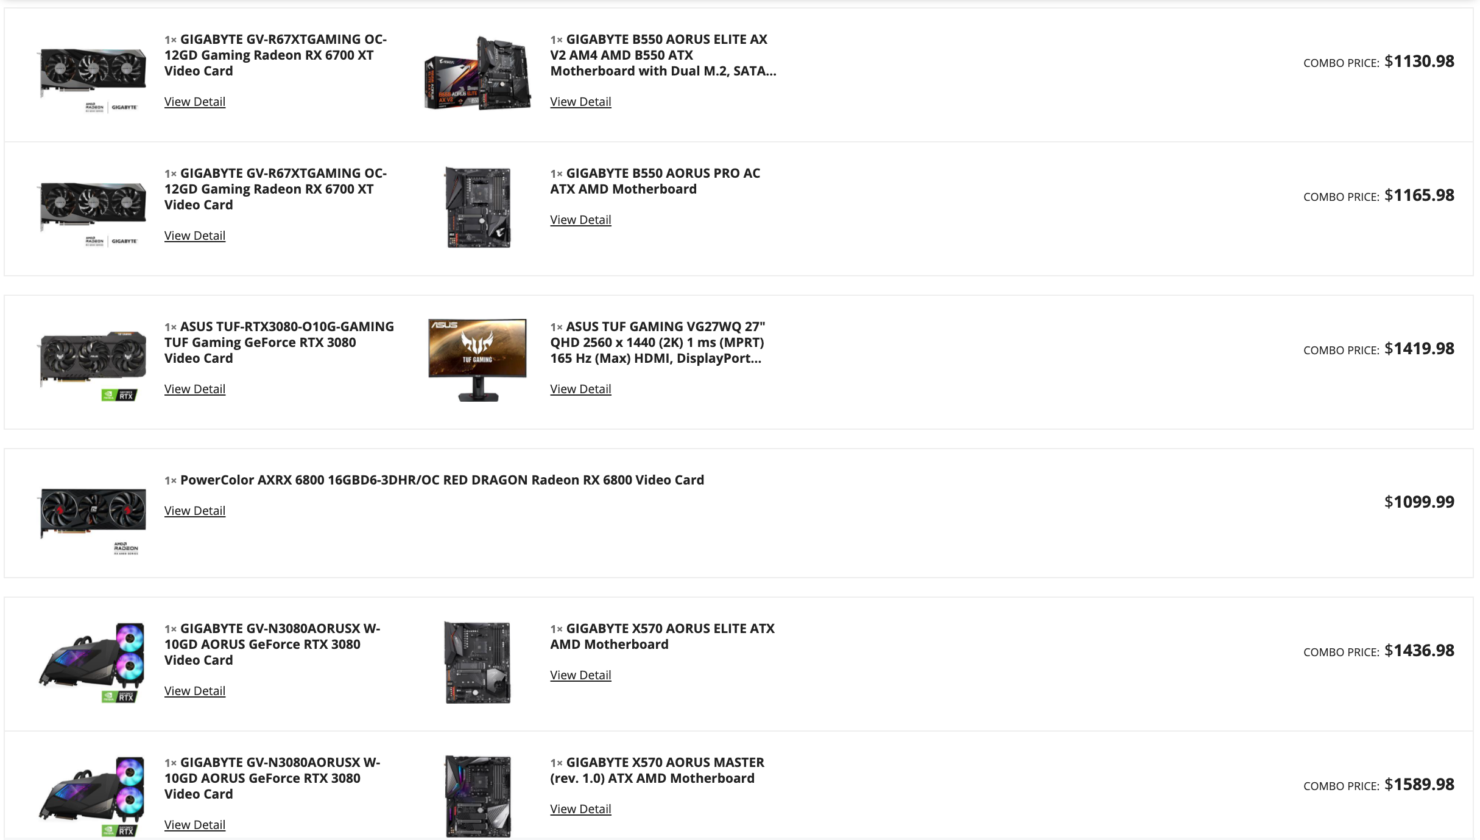 Selection of AMD and NVIDIA graphics cards in today